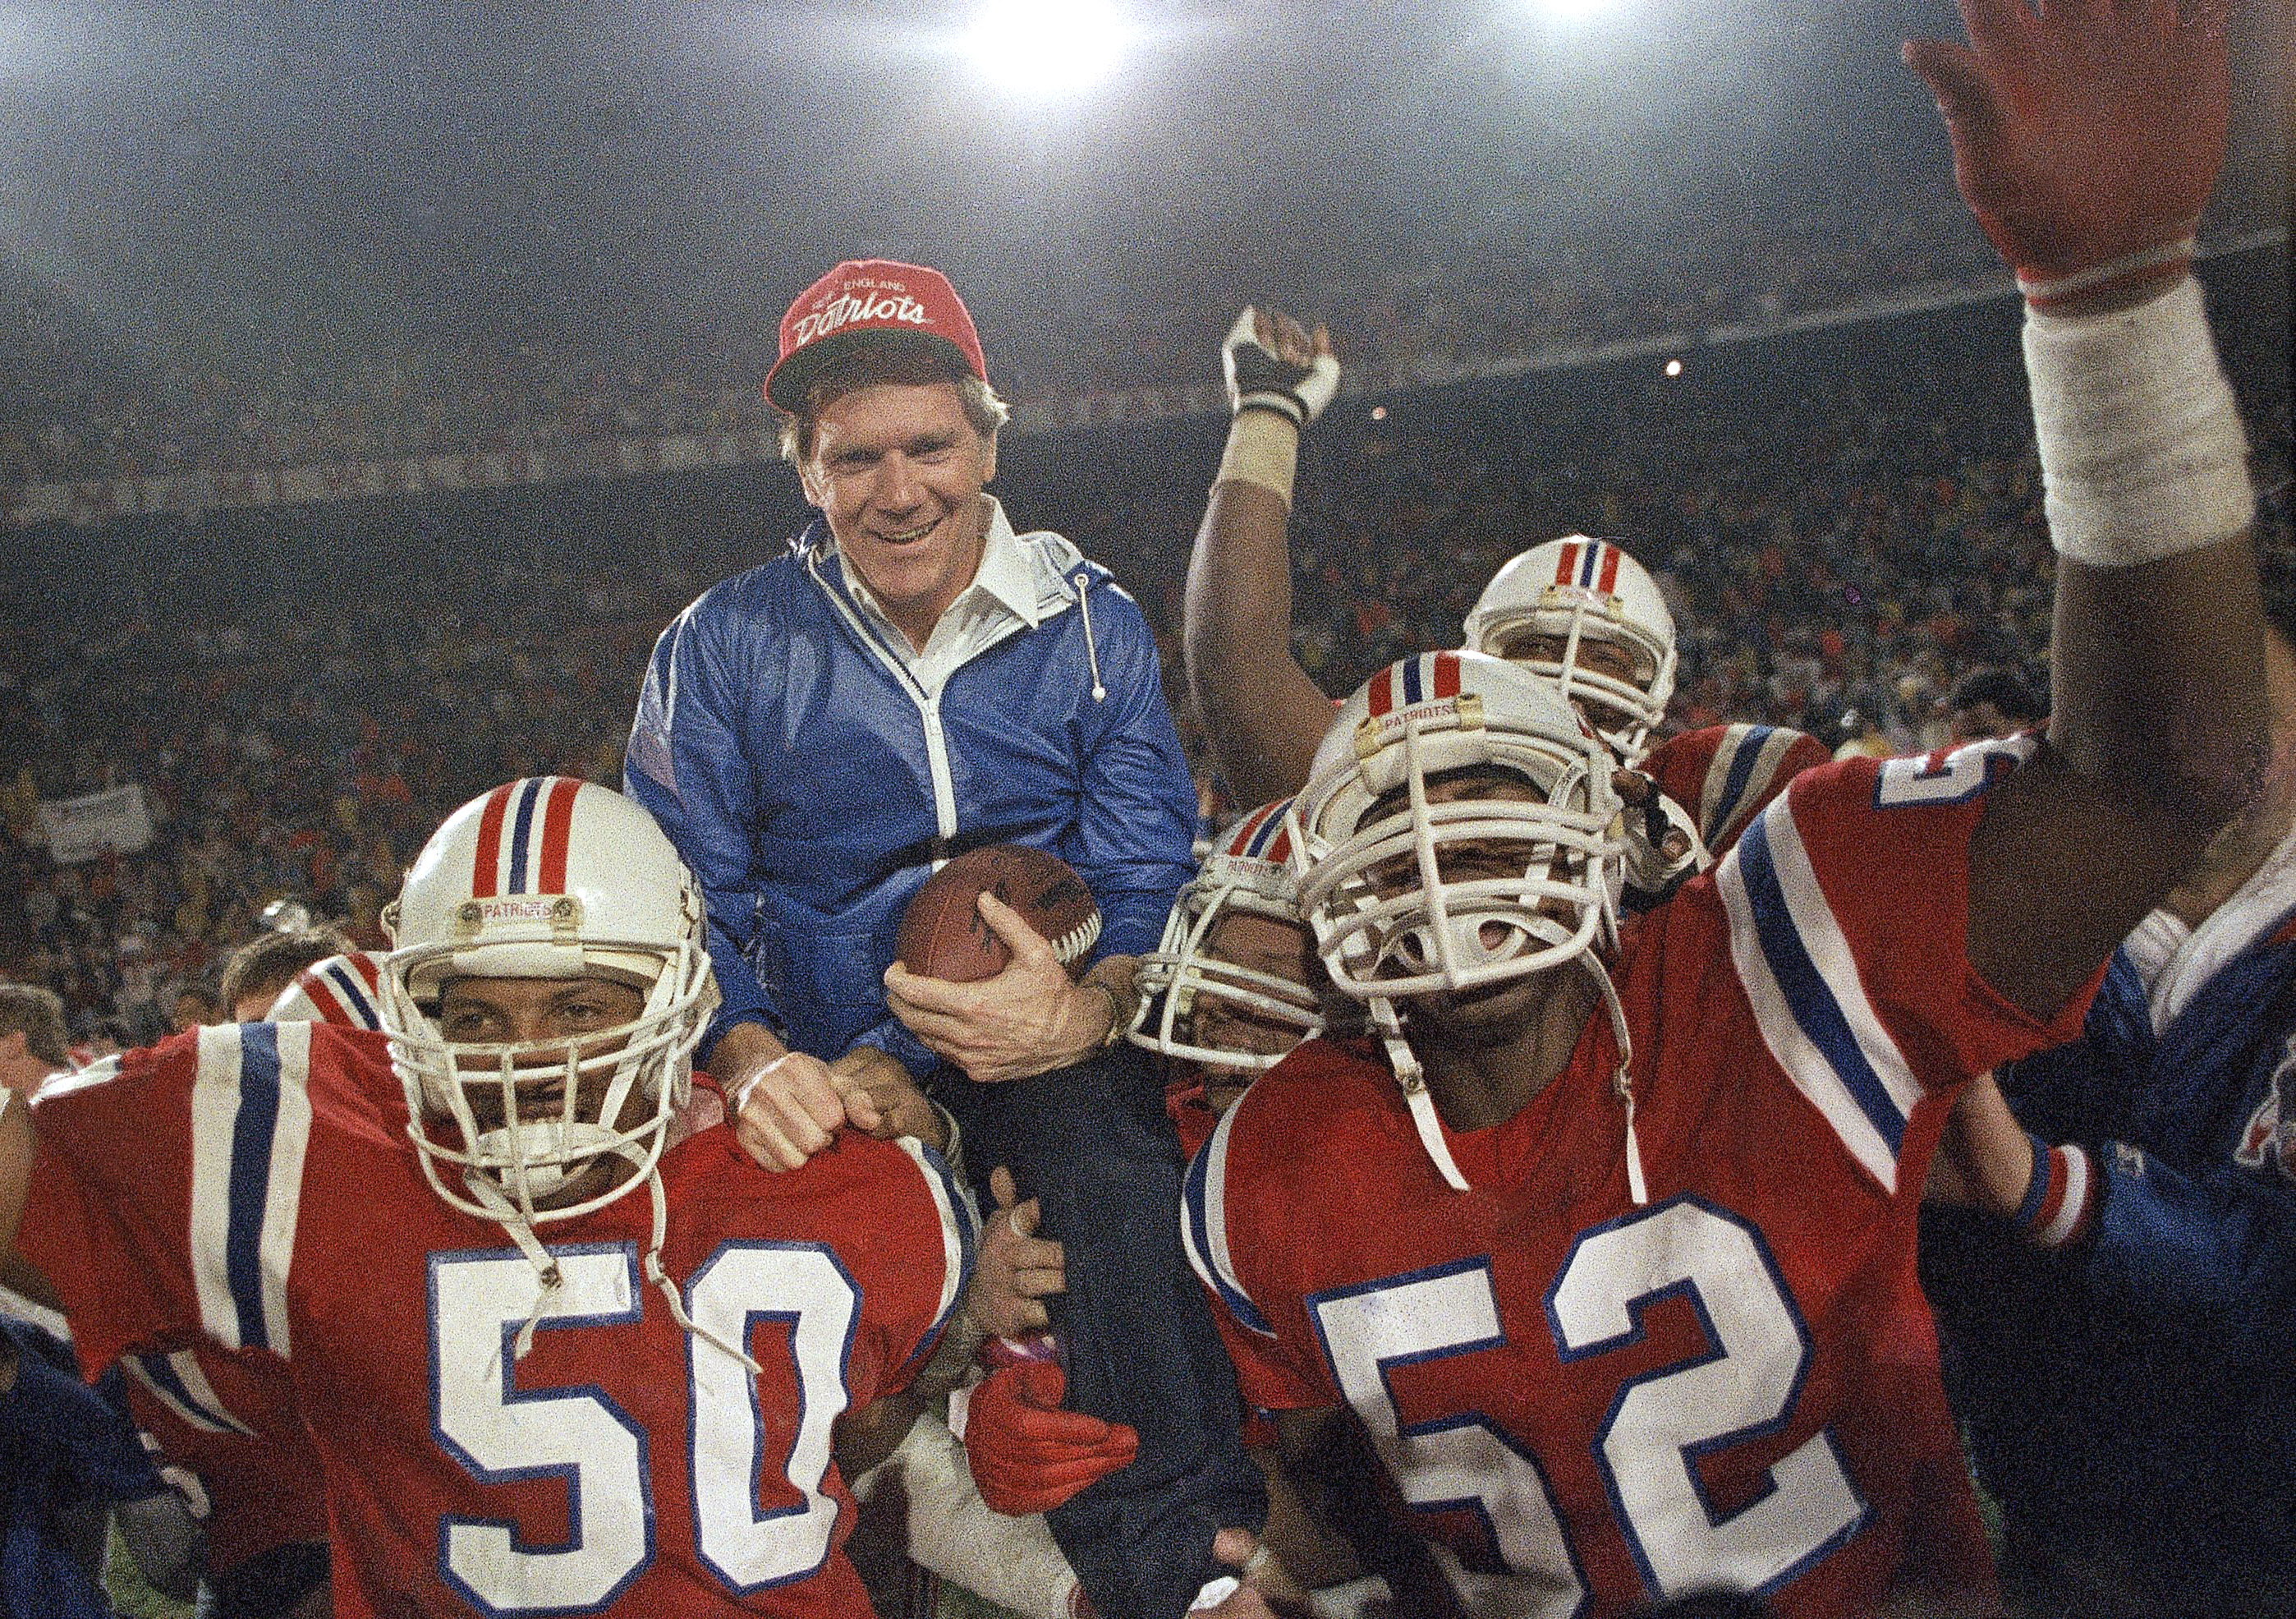 FILE - IN this Jan. 12, 1986, file photo, New England Patriots coach Raymond Berry gets a victory ride from players Larry McGrew (50) and Johnny Rembert (52) after the Patriots defeated the Miami Dolphins 31-14 in the NFL football AFC playoffs in Miami. T